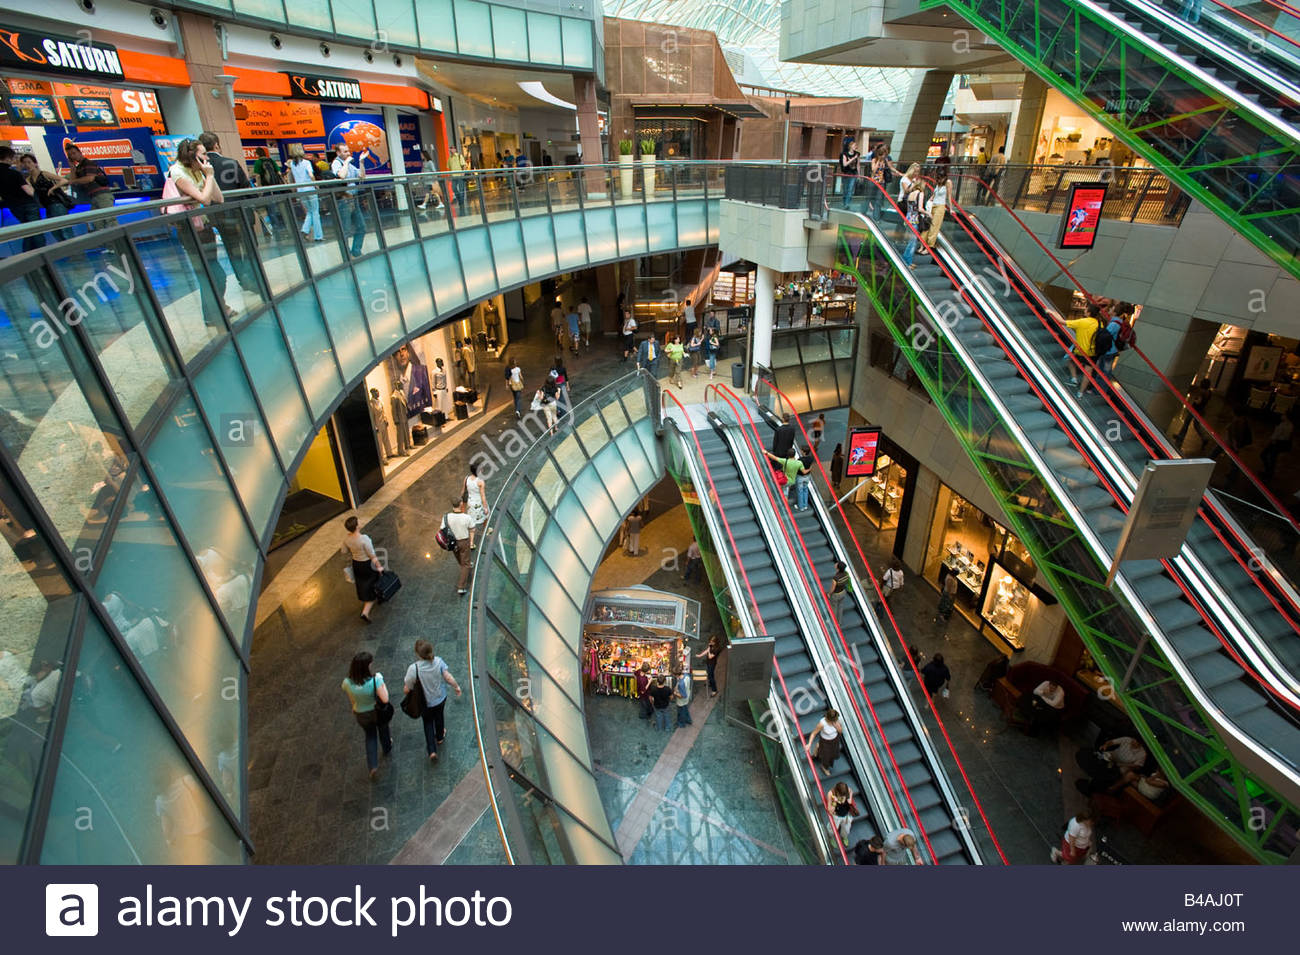 Modern Shopping Centre Zlote Tarasy Warsaw Poland Stock Photo Royalty Free Image 19902648